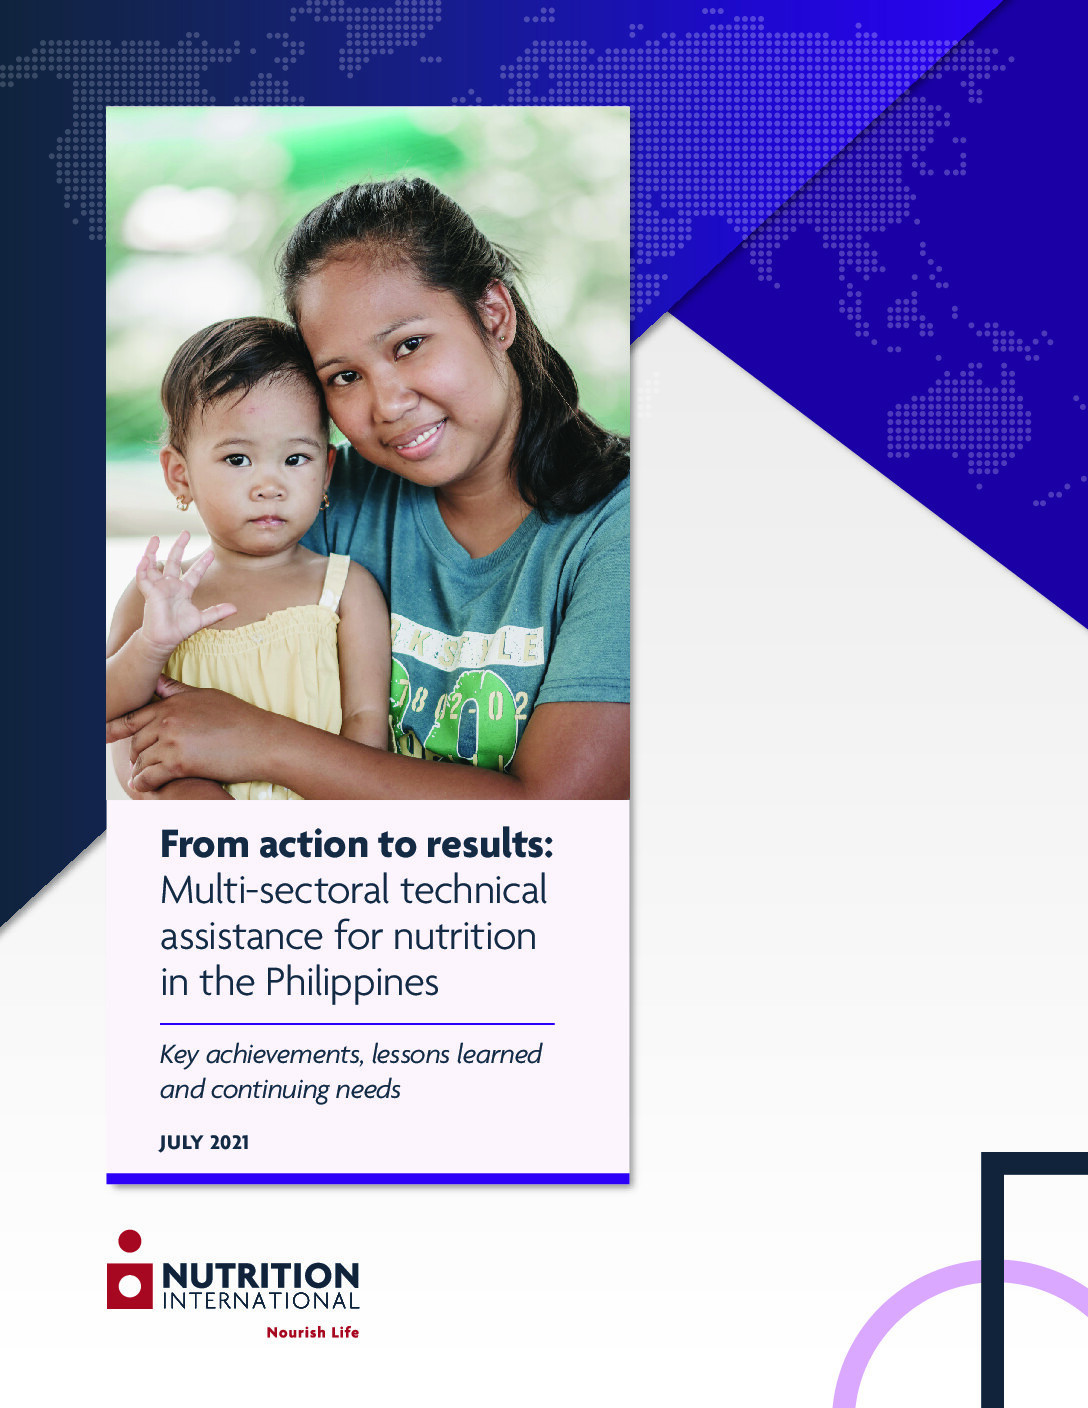 From action to results: Multi-sectoral technical assistance for nutrition in the Philippines thumbnail